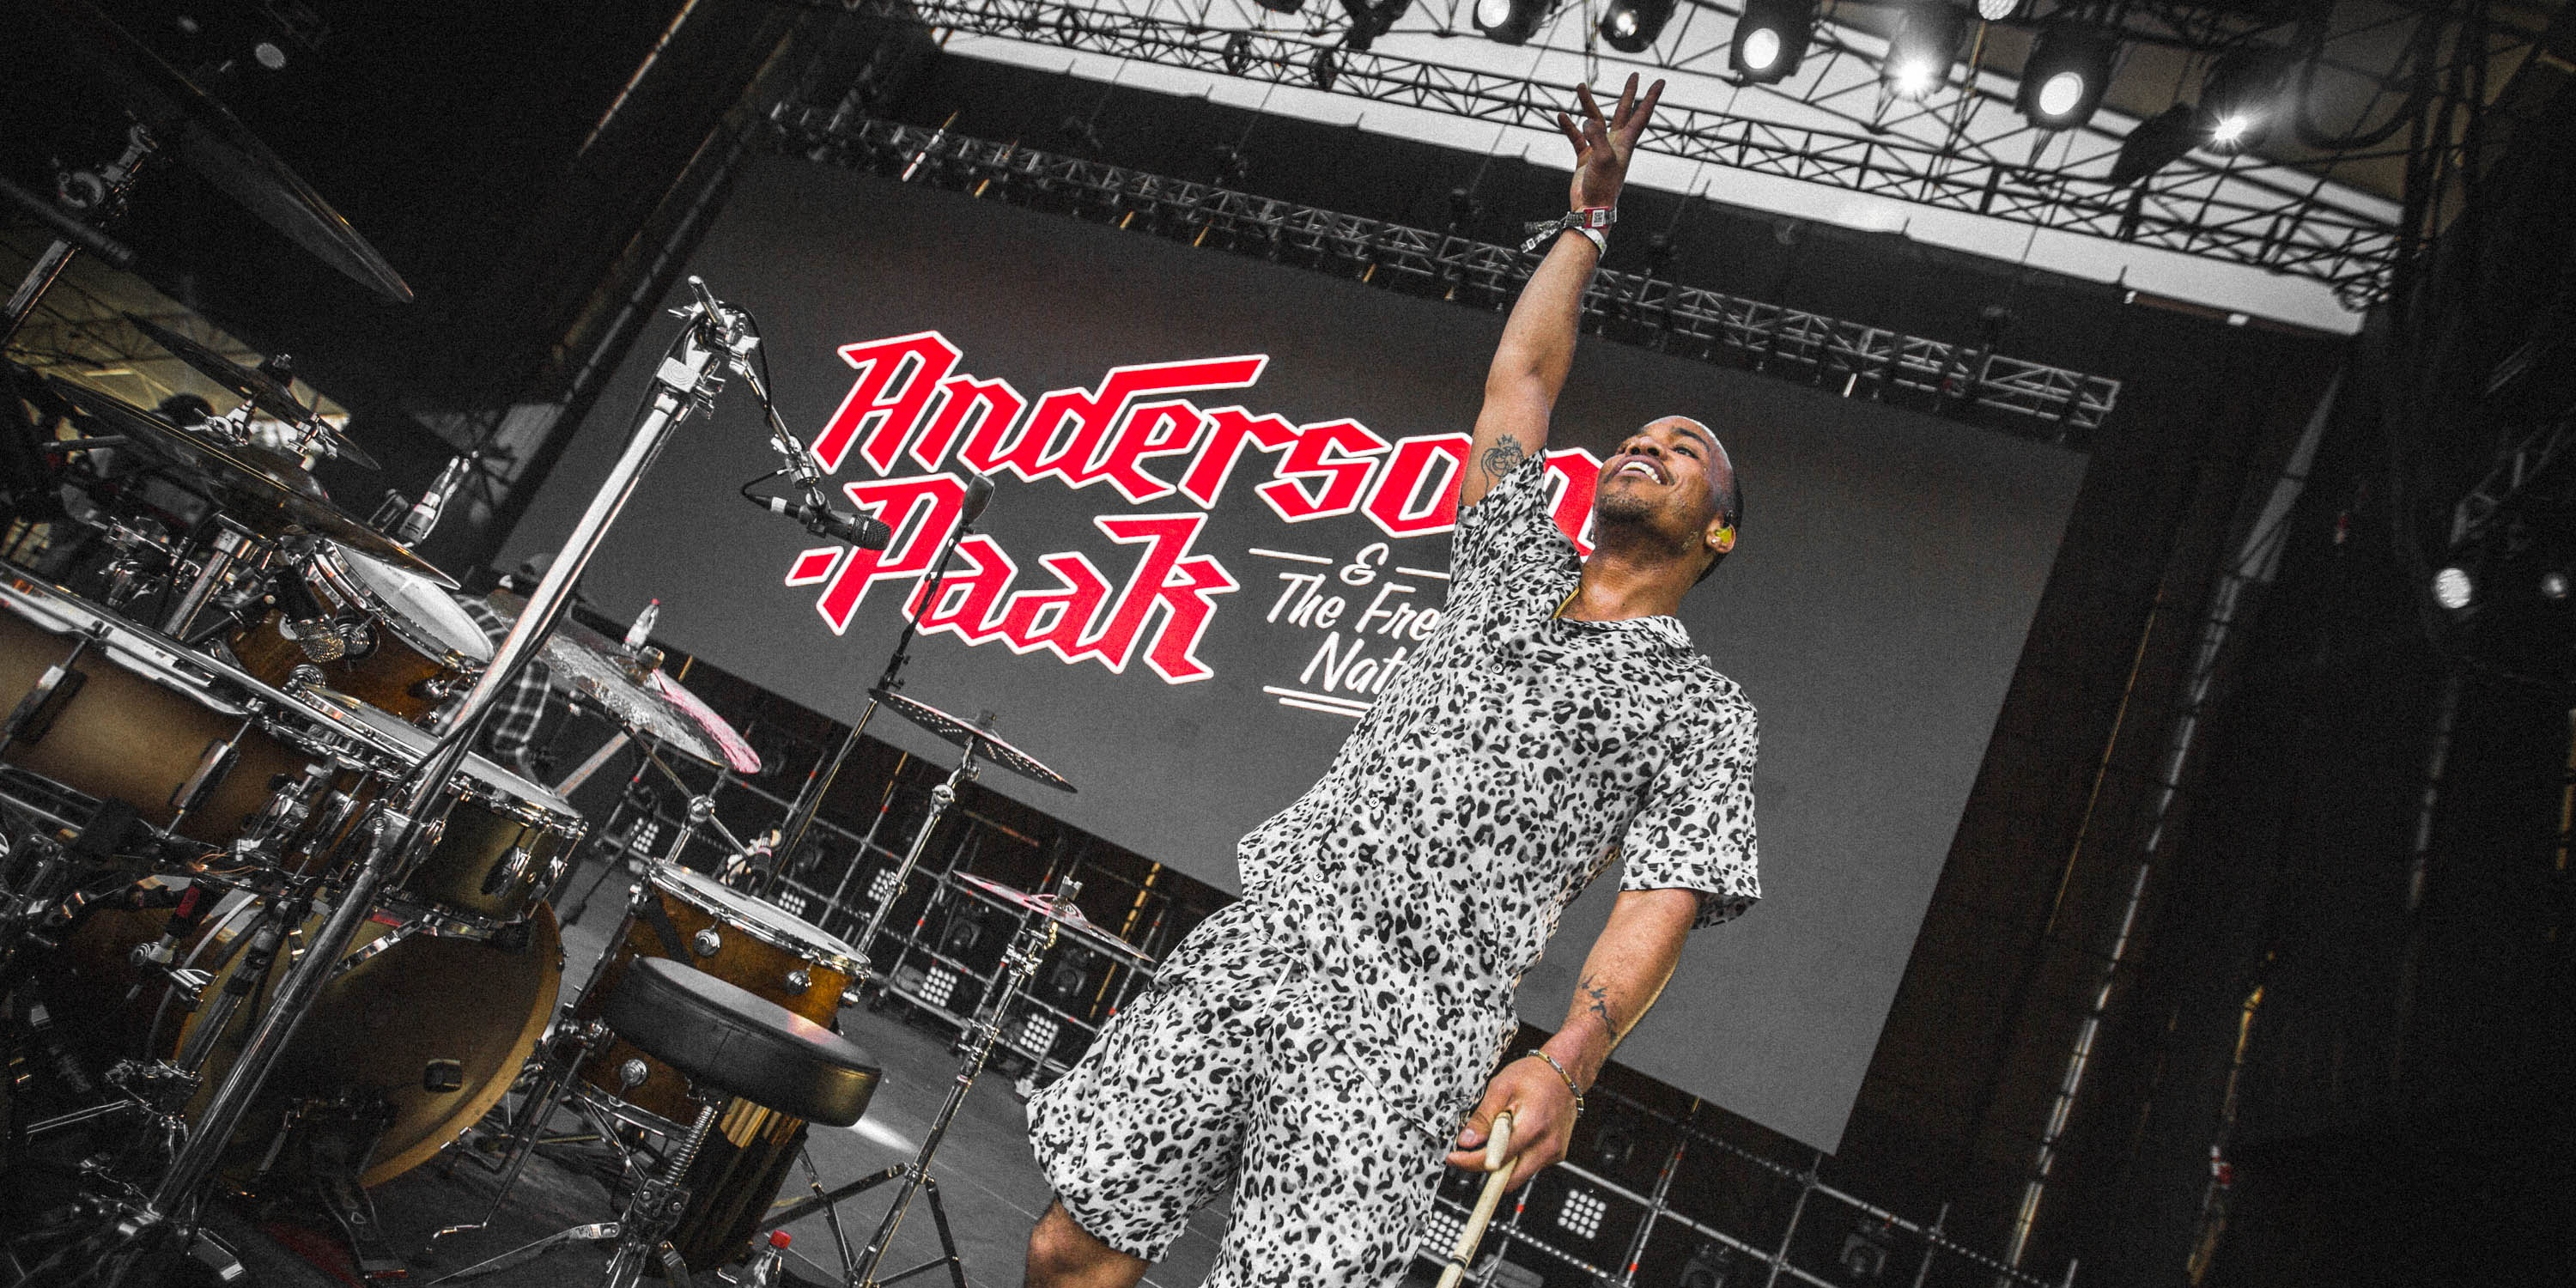 Anderson .Paak and the Free Nationals to perform in Kuala Lumpur